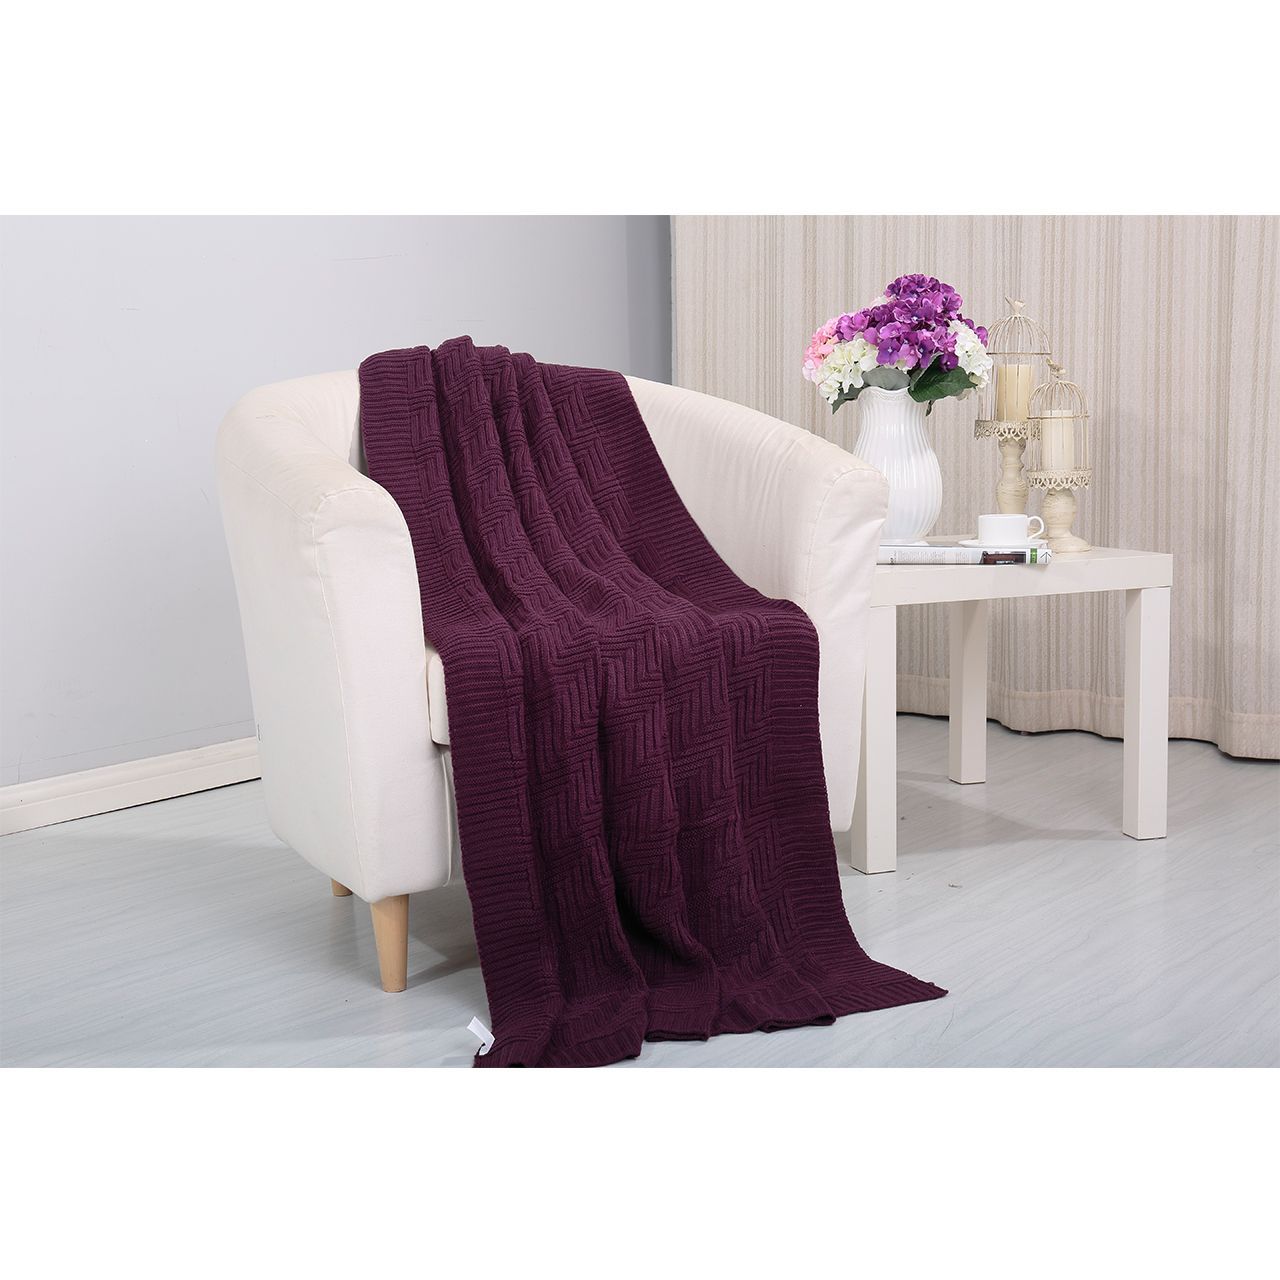 Pietra Knitted Throw Couch Cover Sofa Blanket 50x60